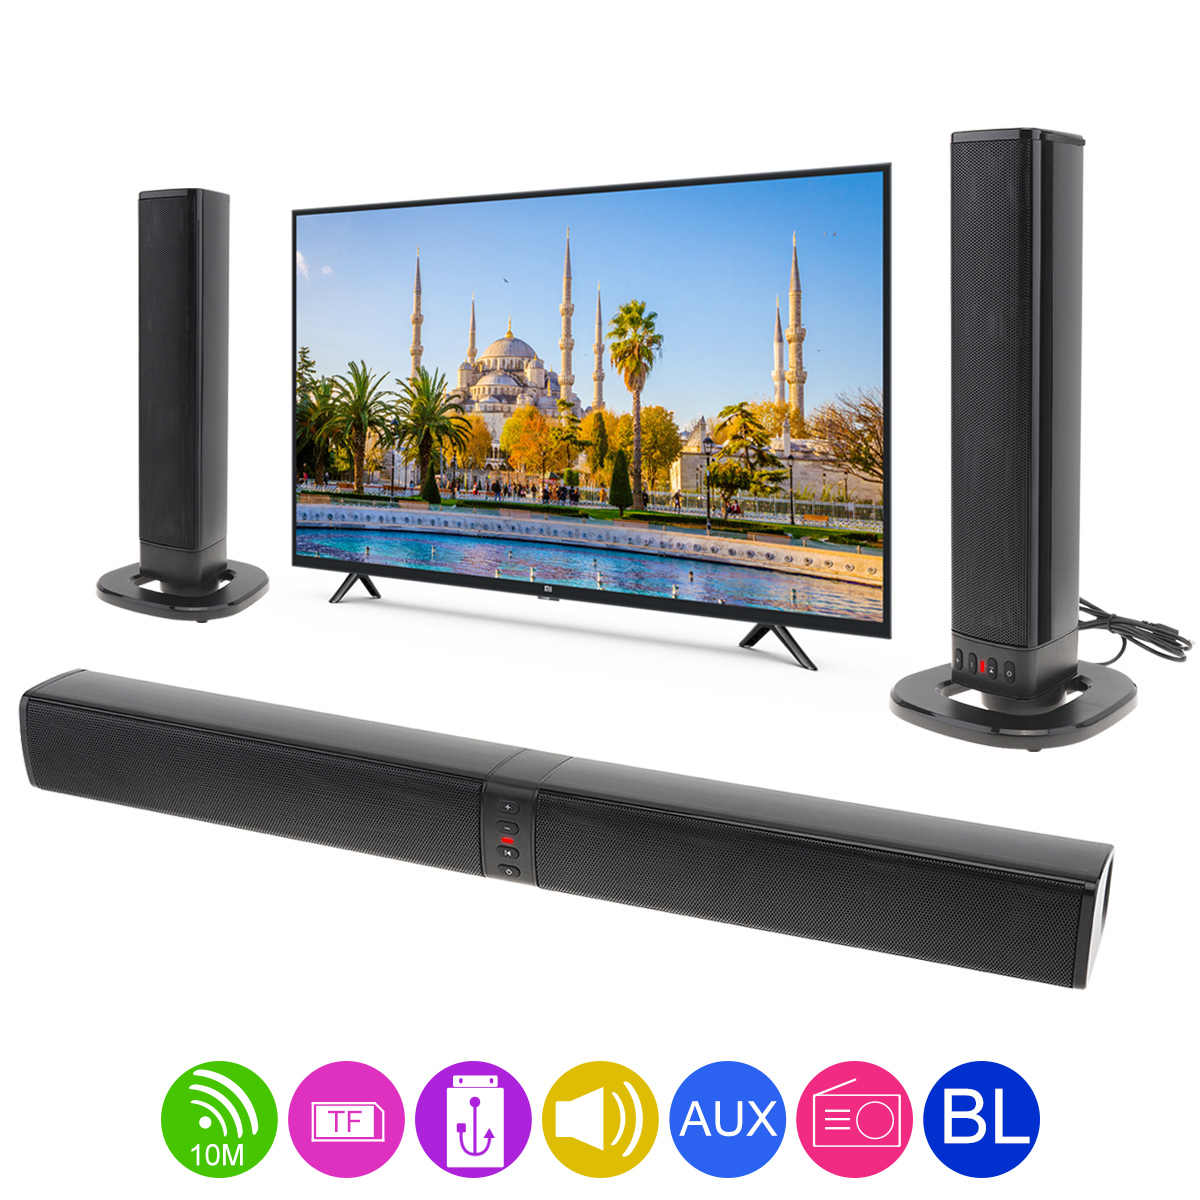 BS-36 Heimkino Surround Multi-funktion Bluetooth Soundbar-lautsprecher mit 4 Vollständige Palette Hörner Unterstützung Faltbare Split für TV /PC